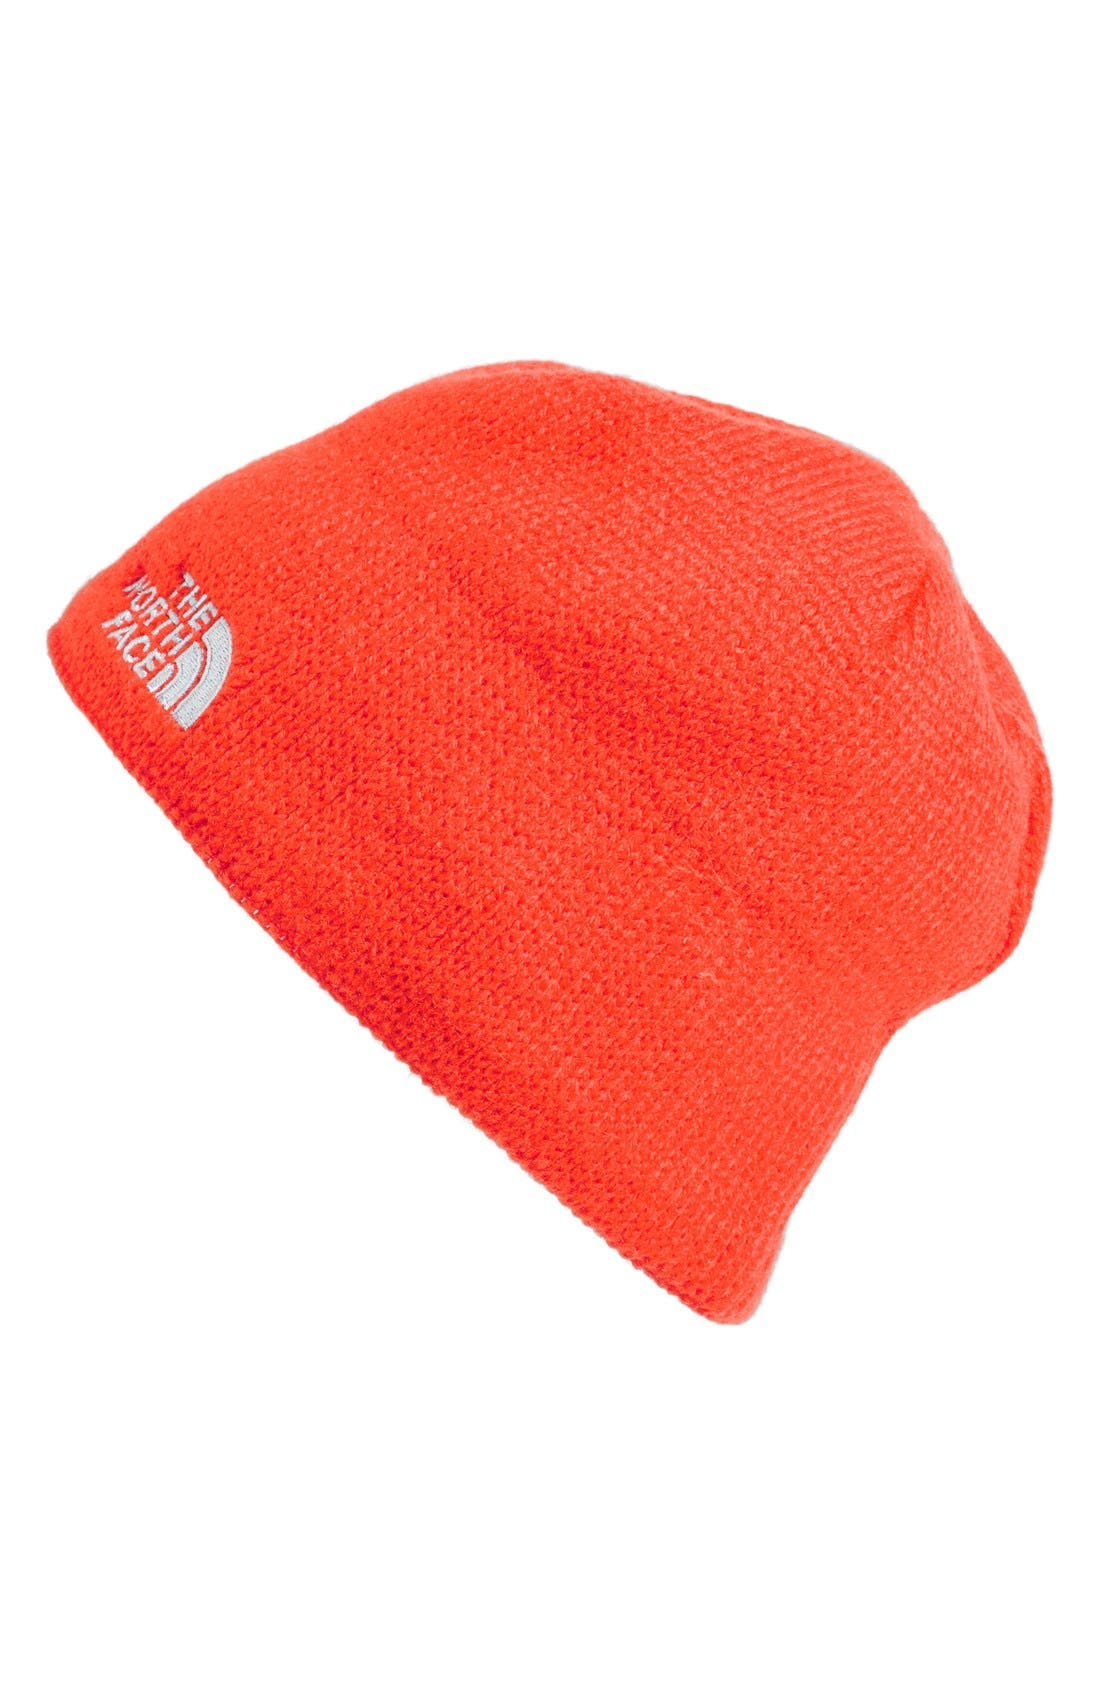 'Bones' Microfleece Beanie,                             Main thumbnail 14, color,